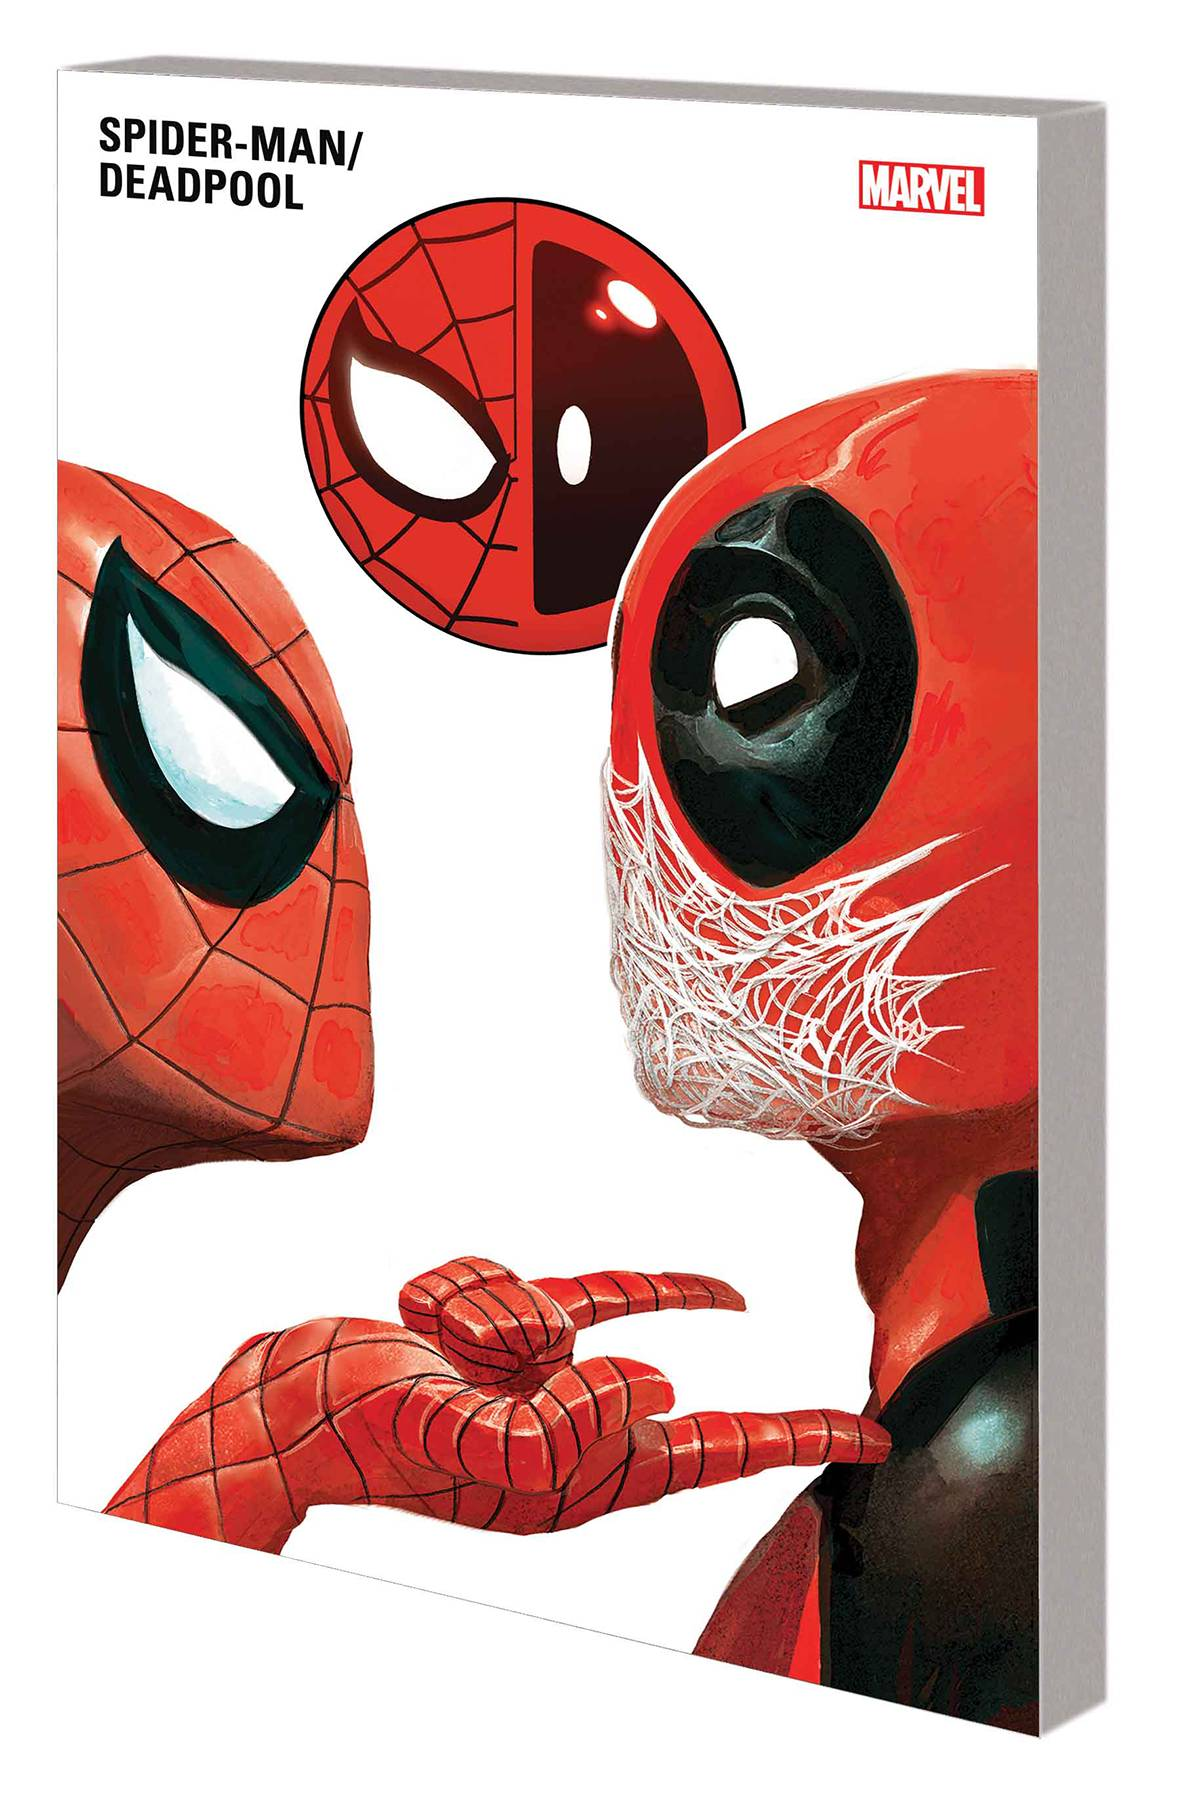 SPIDER-MAN DEADPOOL TP 2 SIDE PIECES.jpg